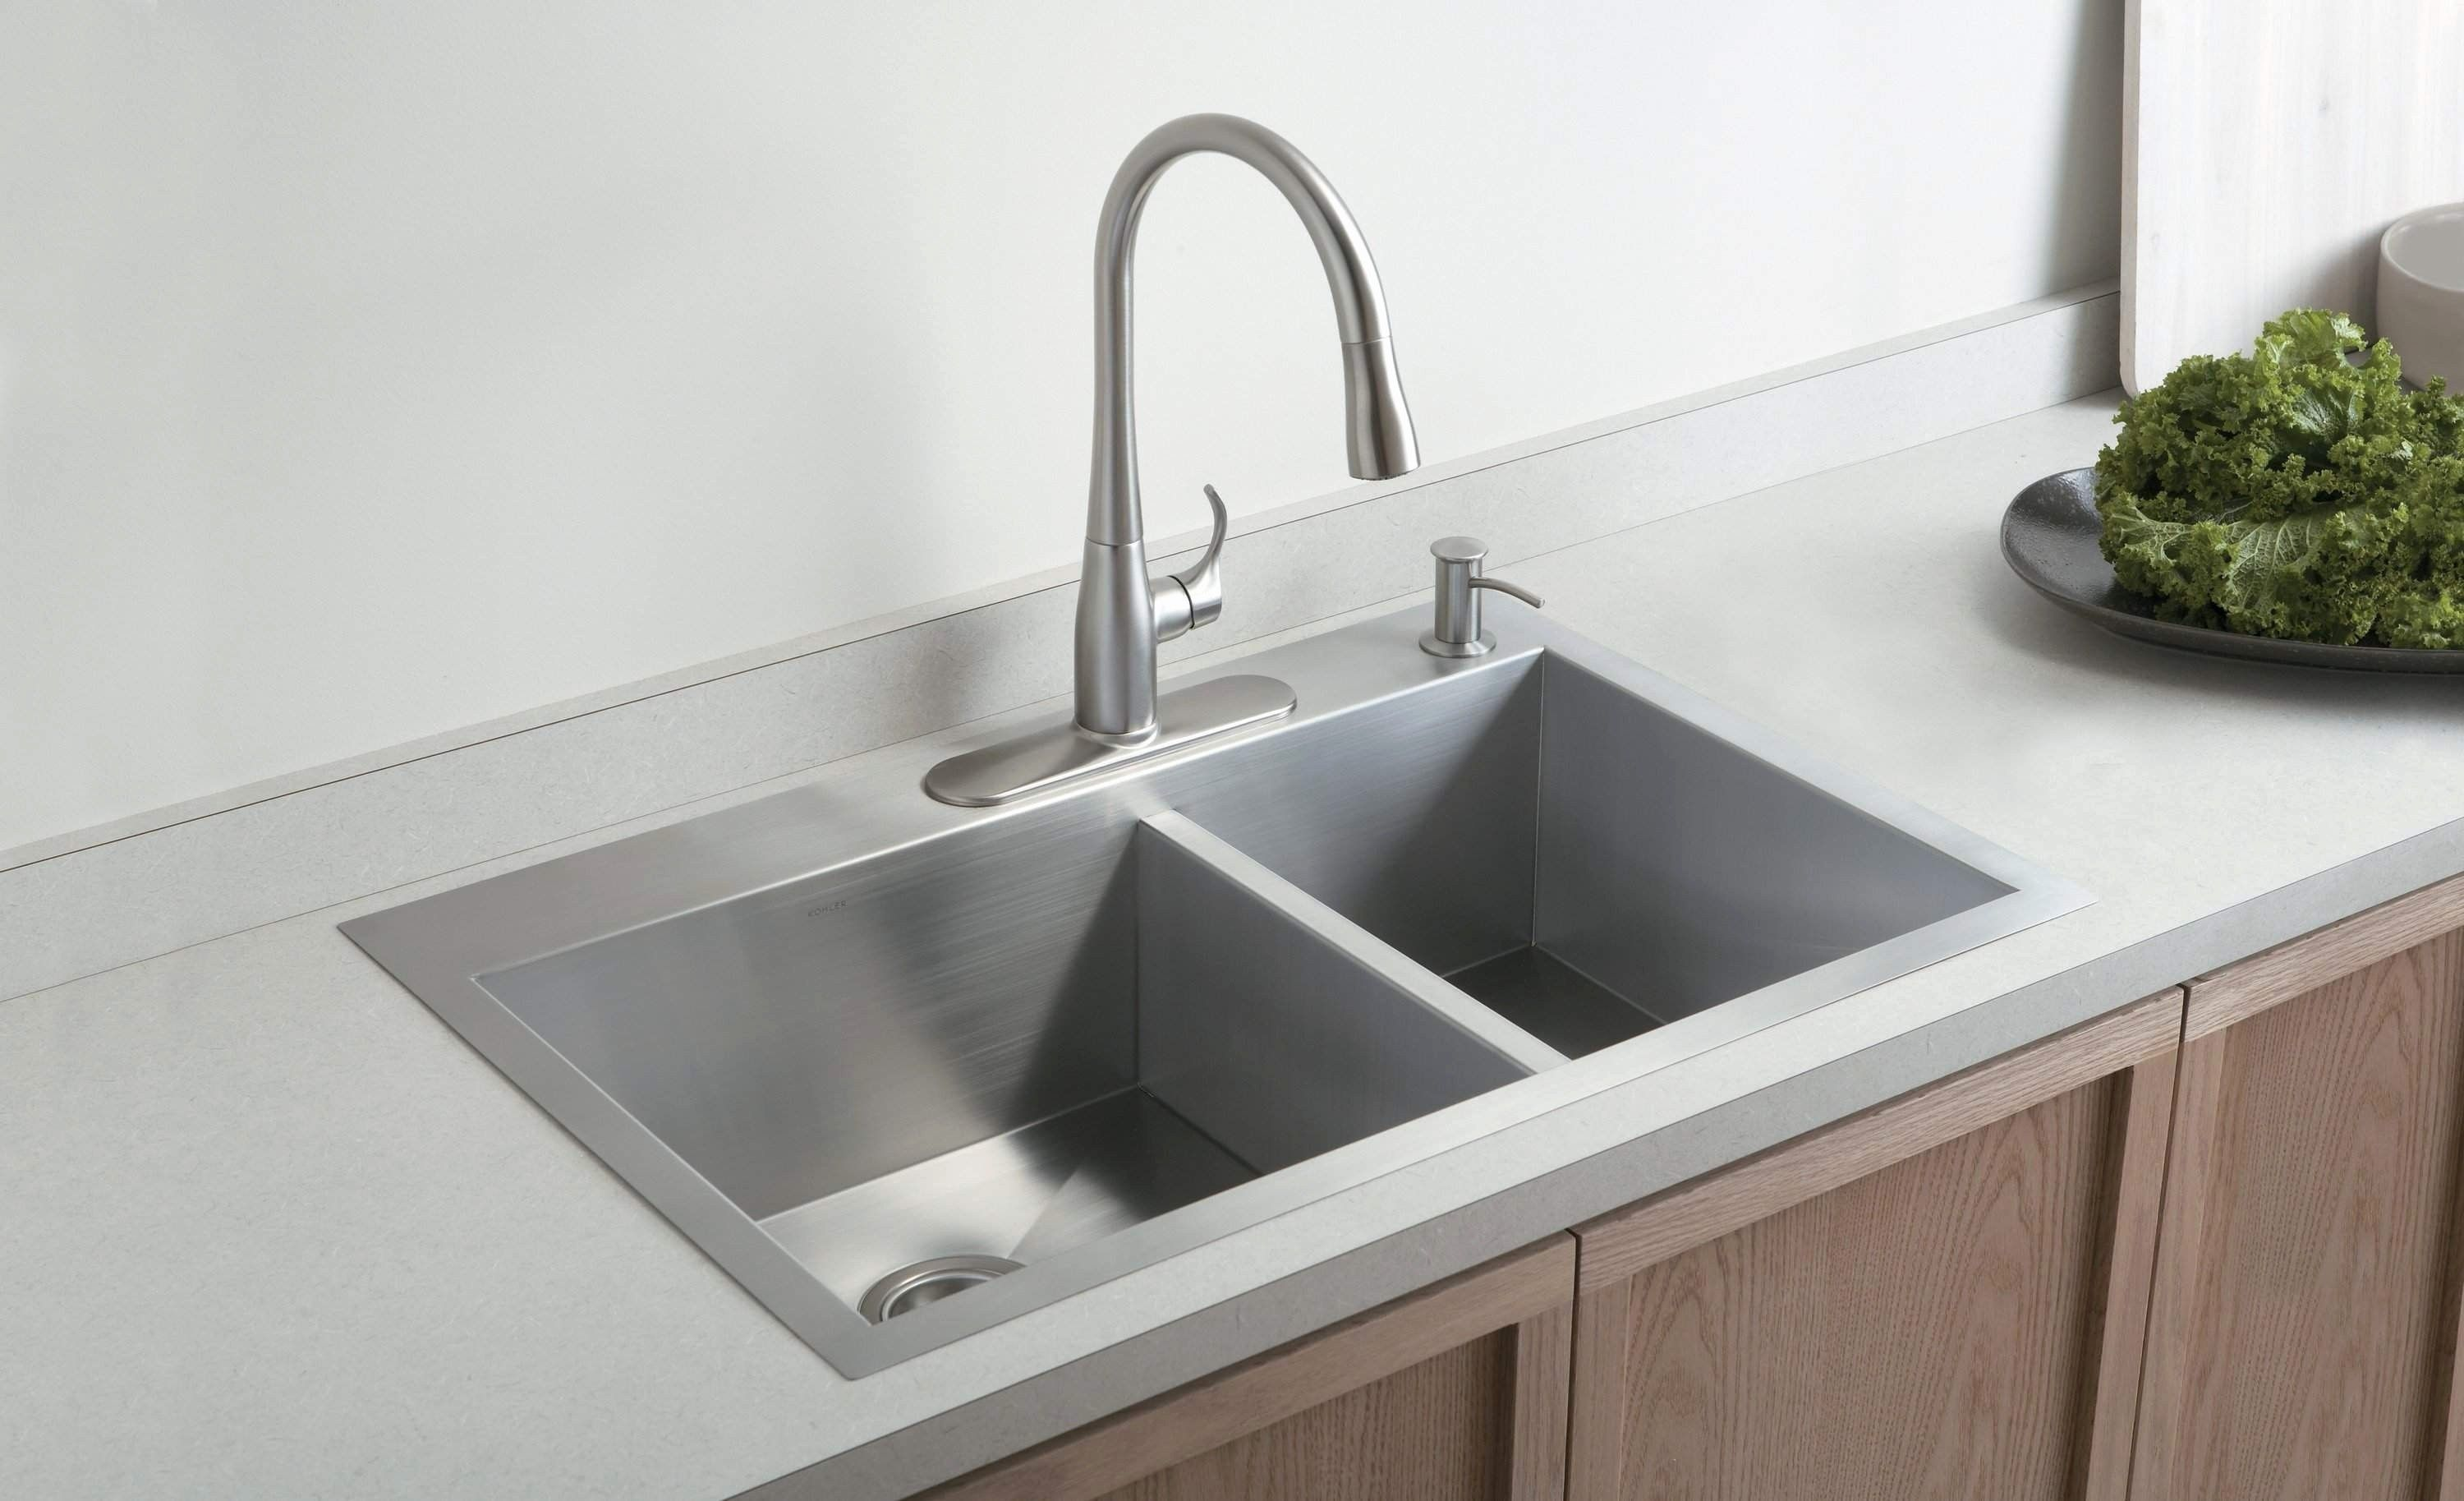 19x33 kitchen sink 19x33 kitchen sink wow 1045